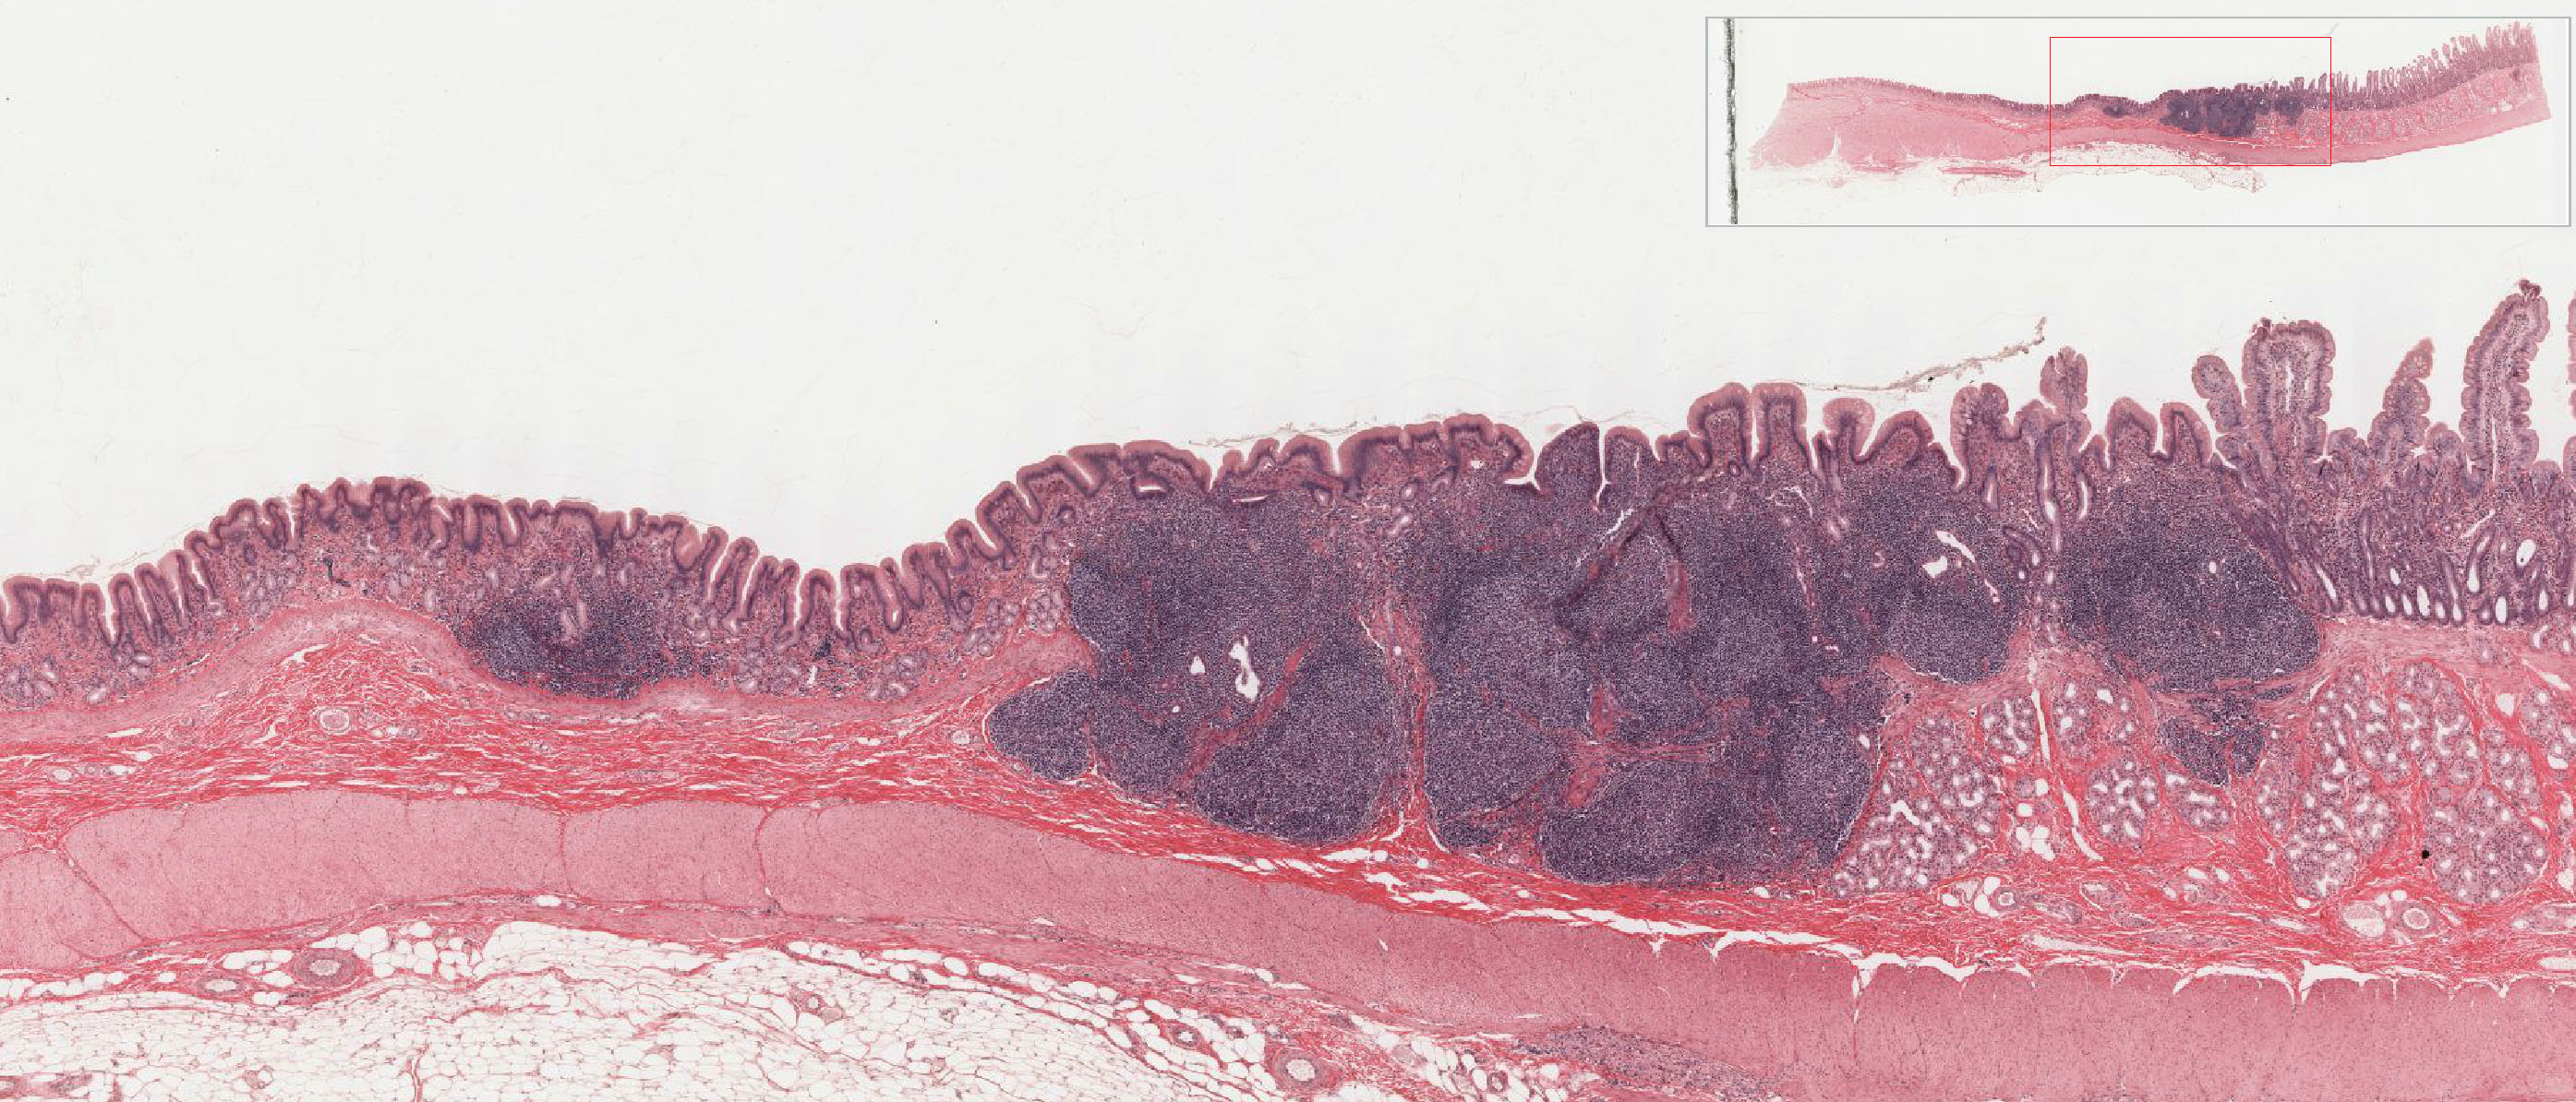 Intestine Tissue